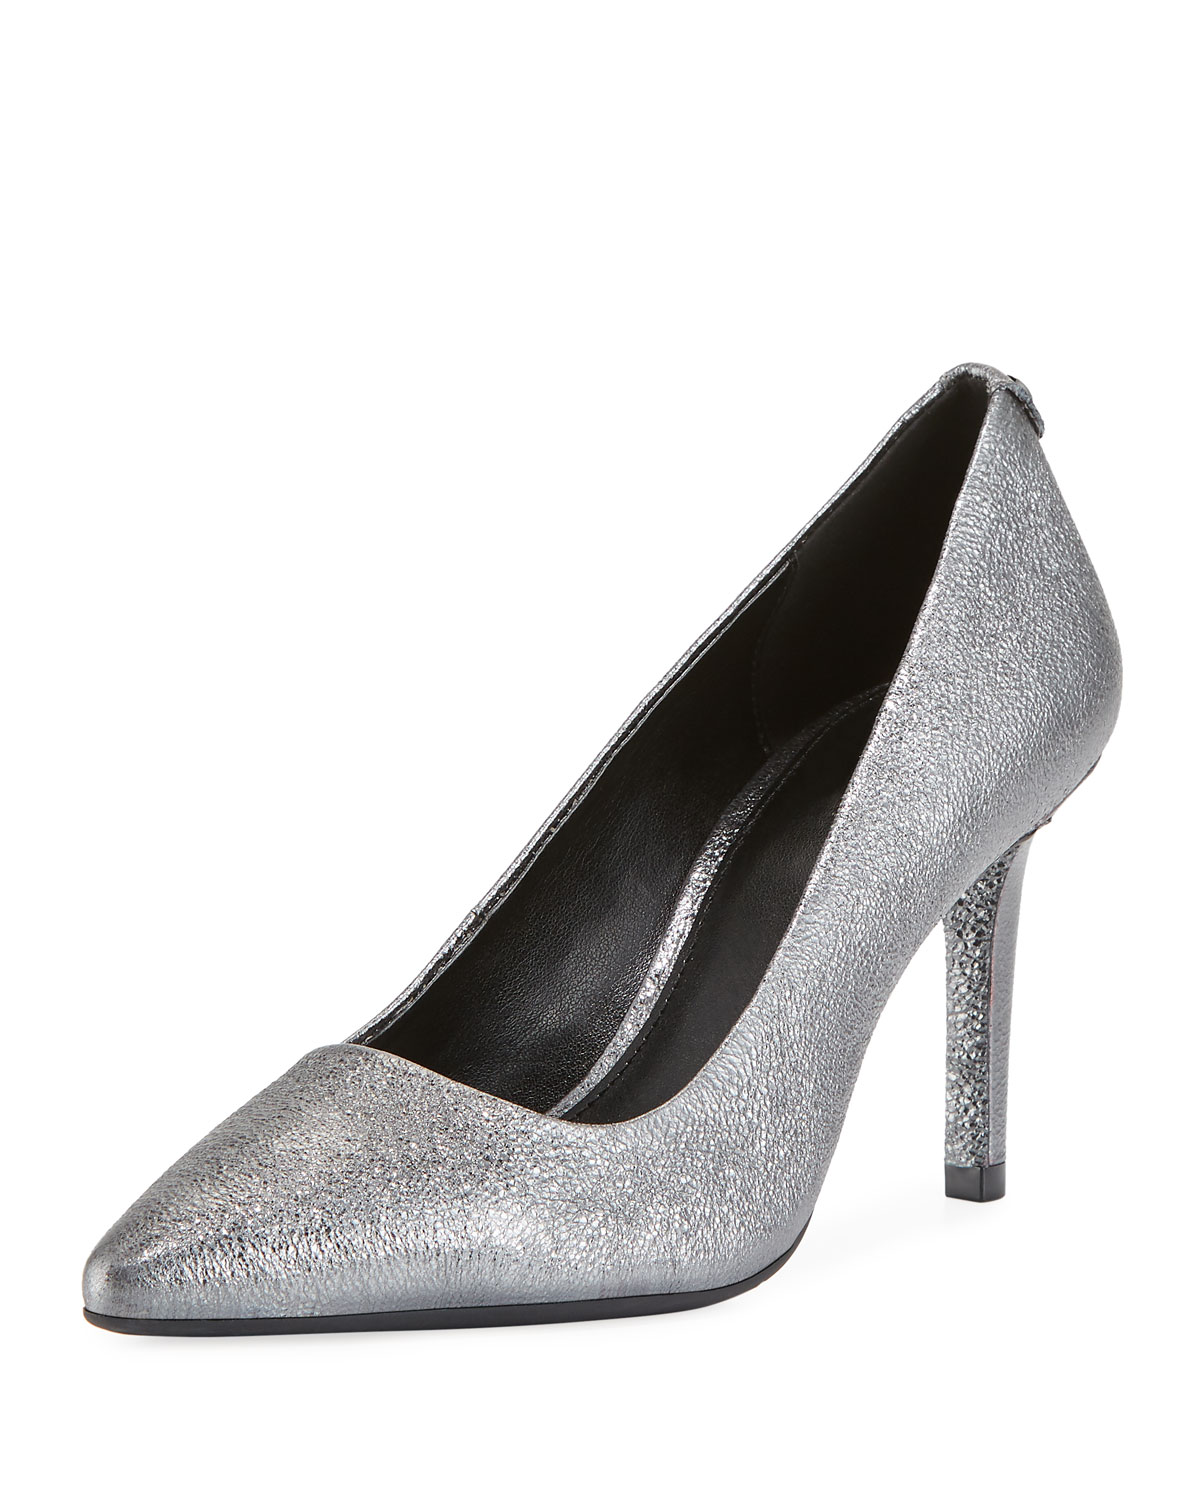 MICHAEL MICHAEL KORS DOROTHY FLEX METALLIC LEATHER PUMPS